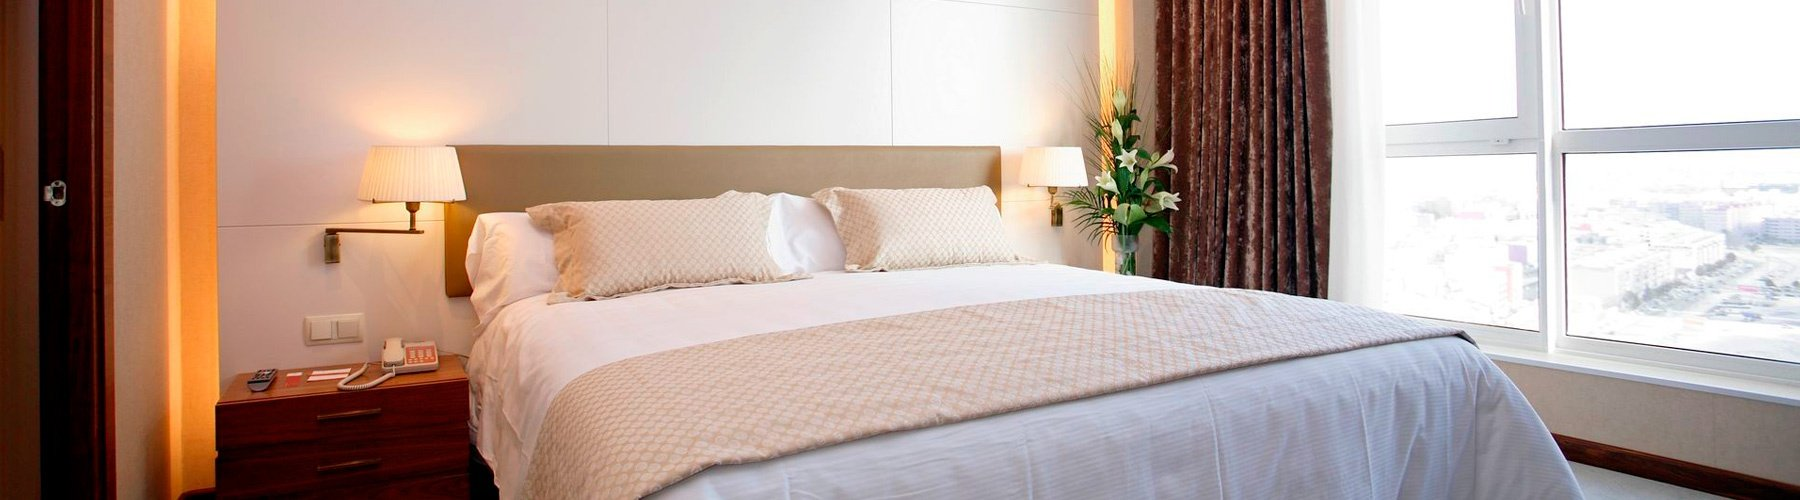 Rooms - Sercotel Sorolla Palace